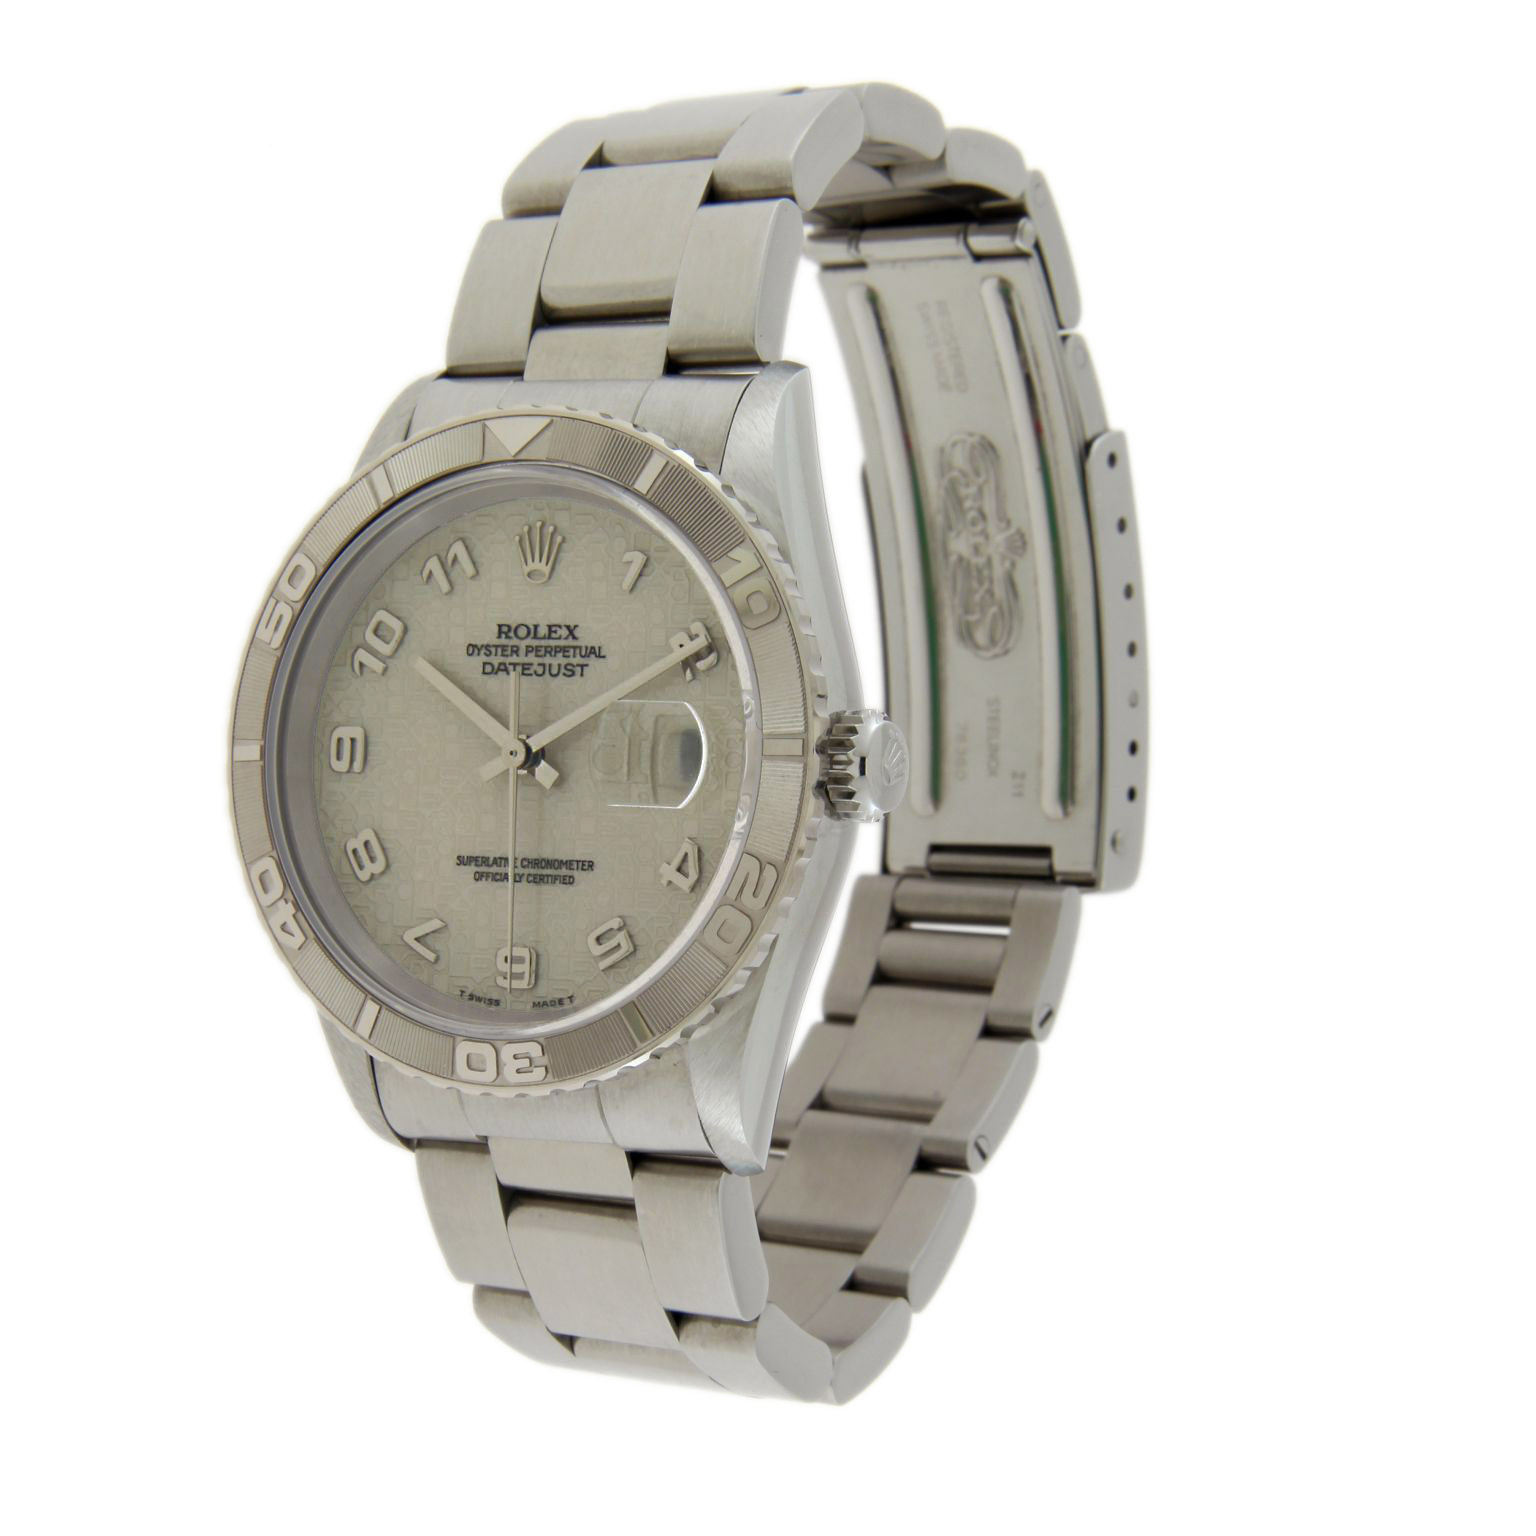 16264 Rolex Oyster Perpetual Datejust